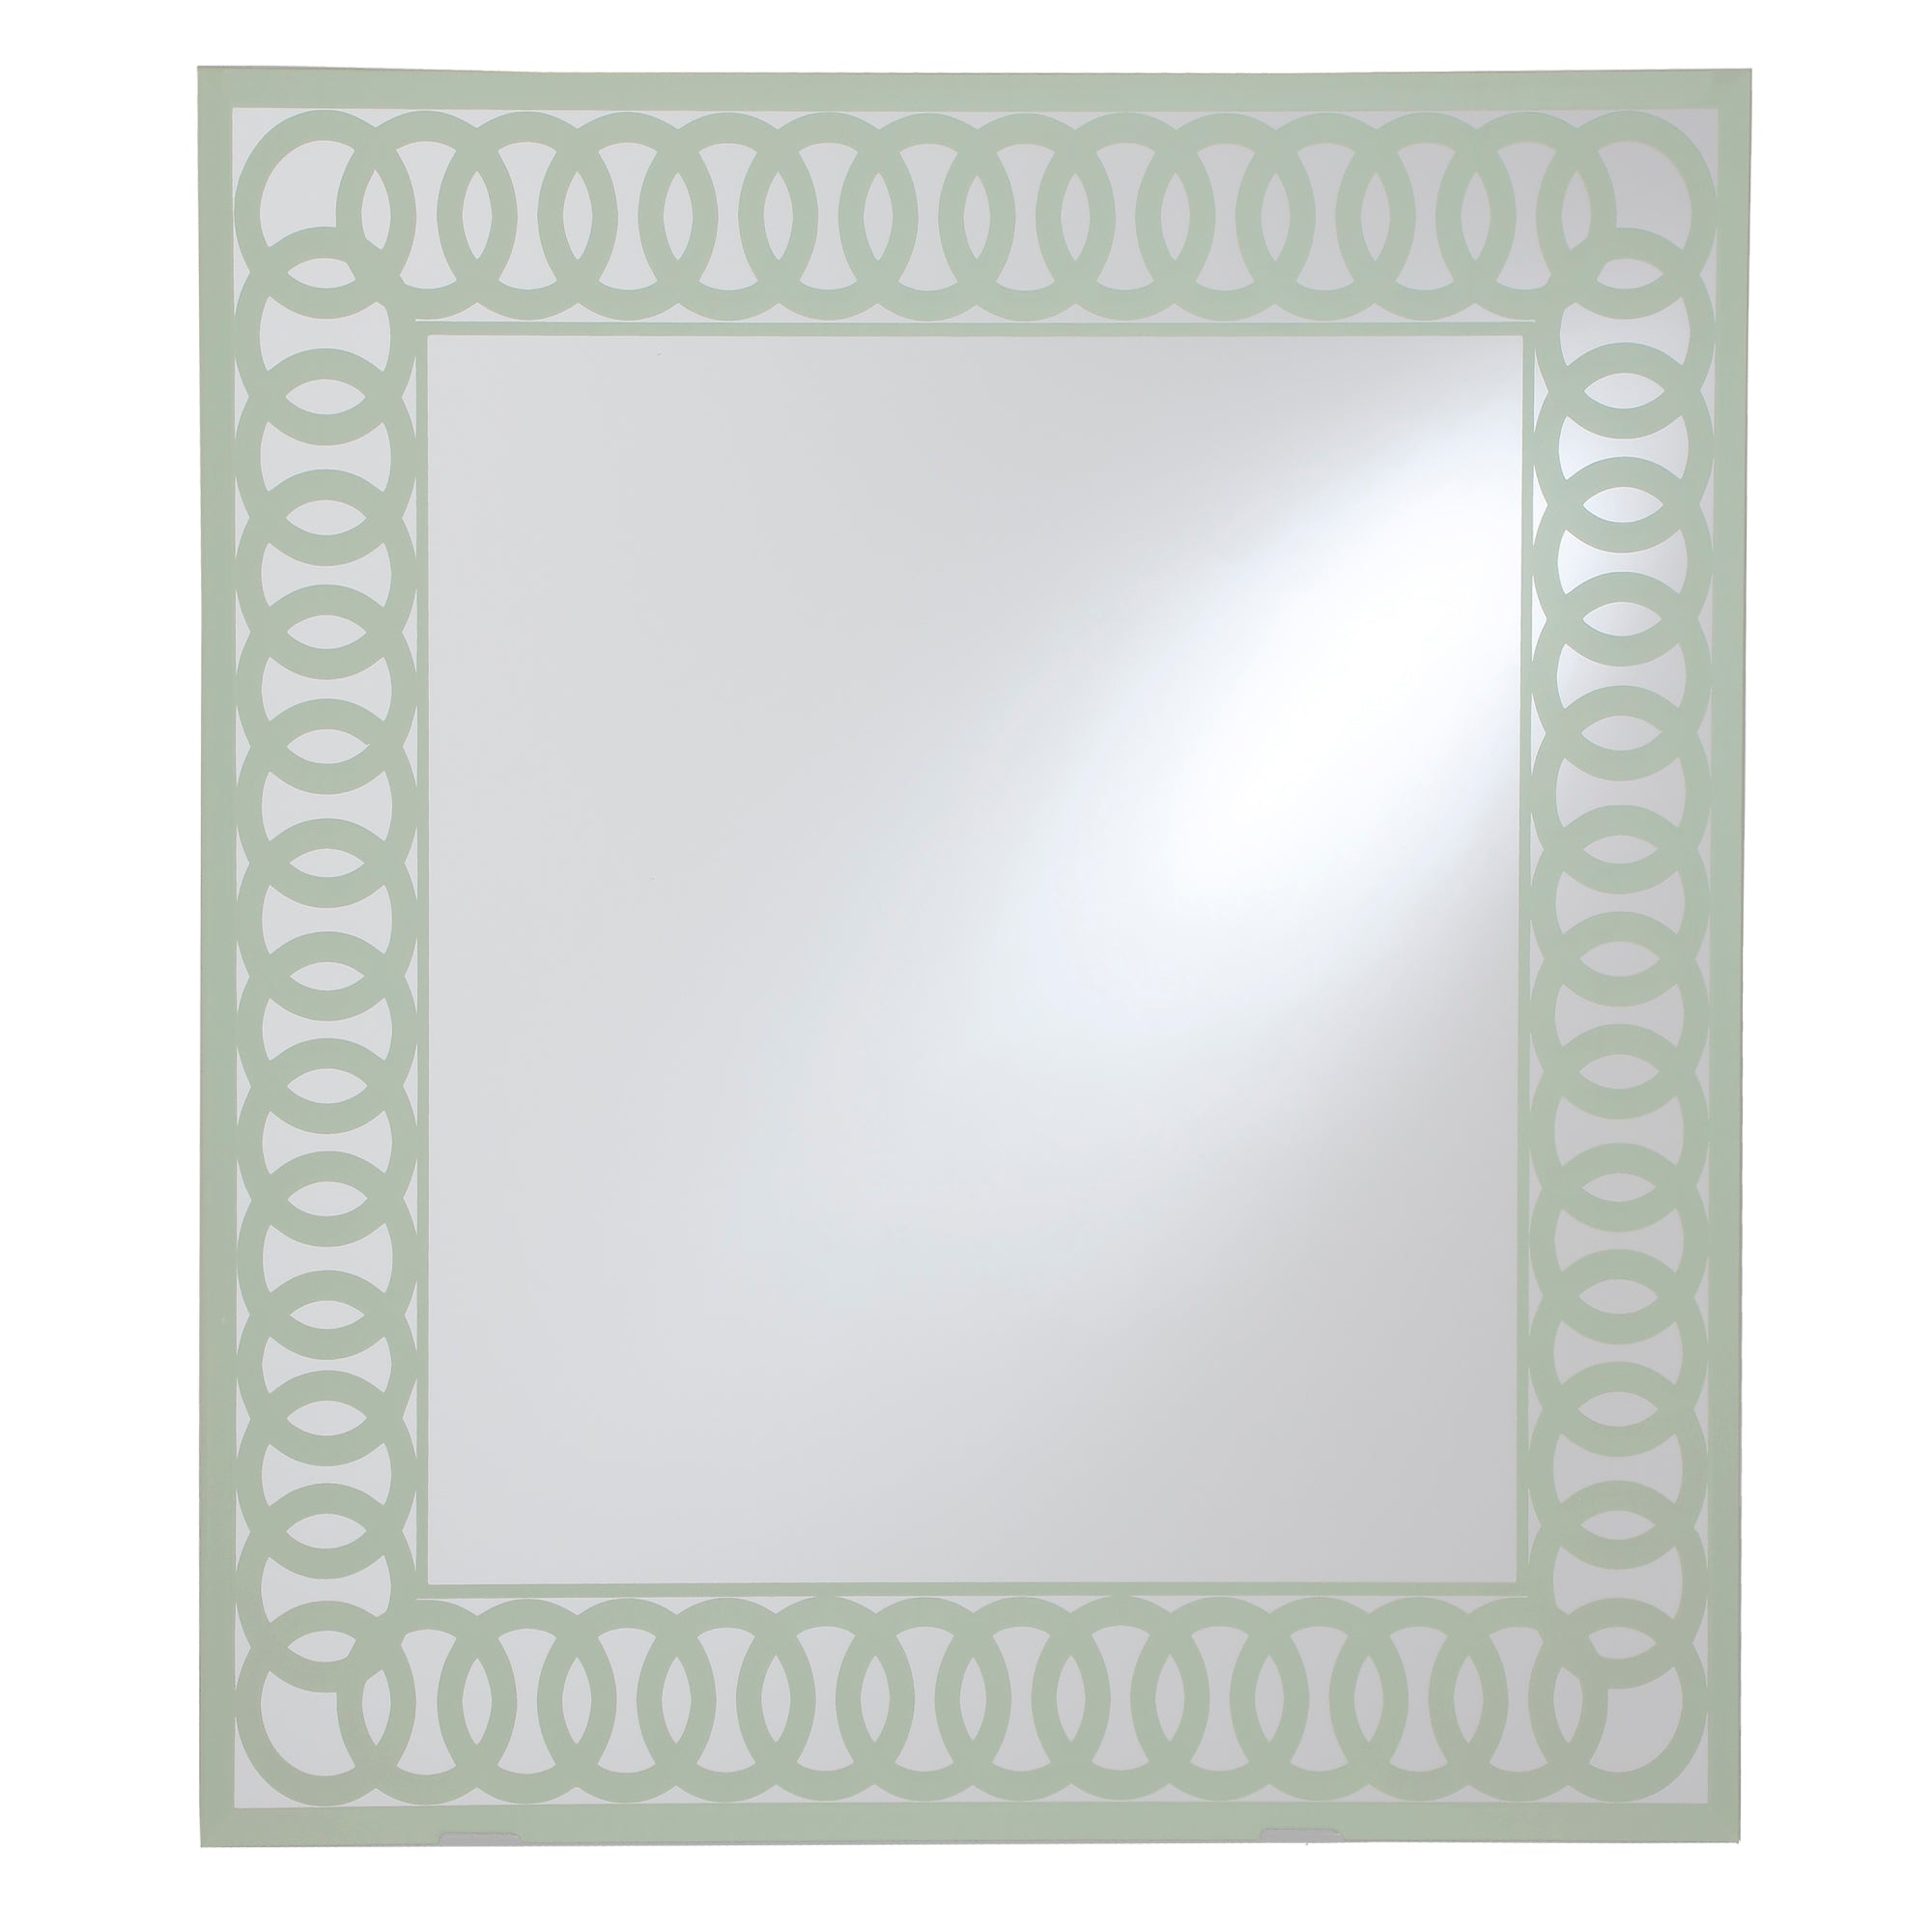 decorative bathroom mirror rectangle. Breeze Point M00147 24\ Decorative Bathroom Mirror Rectangle ,